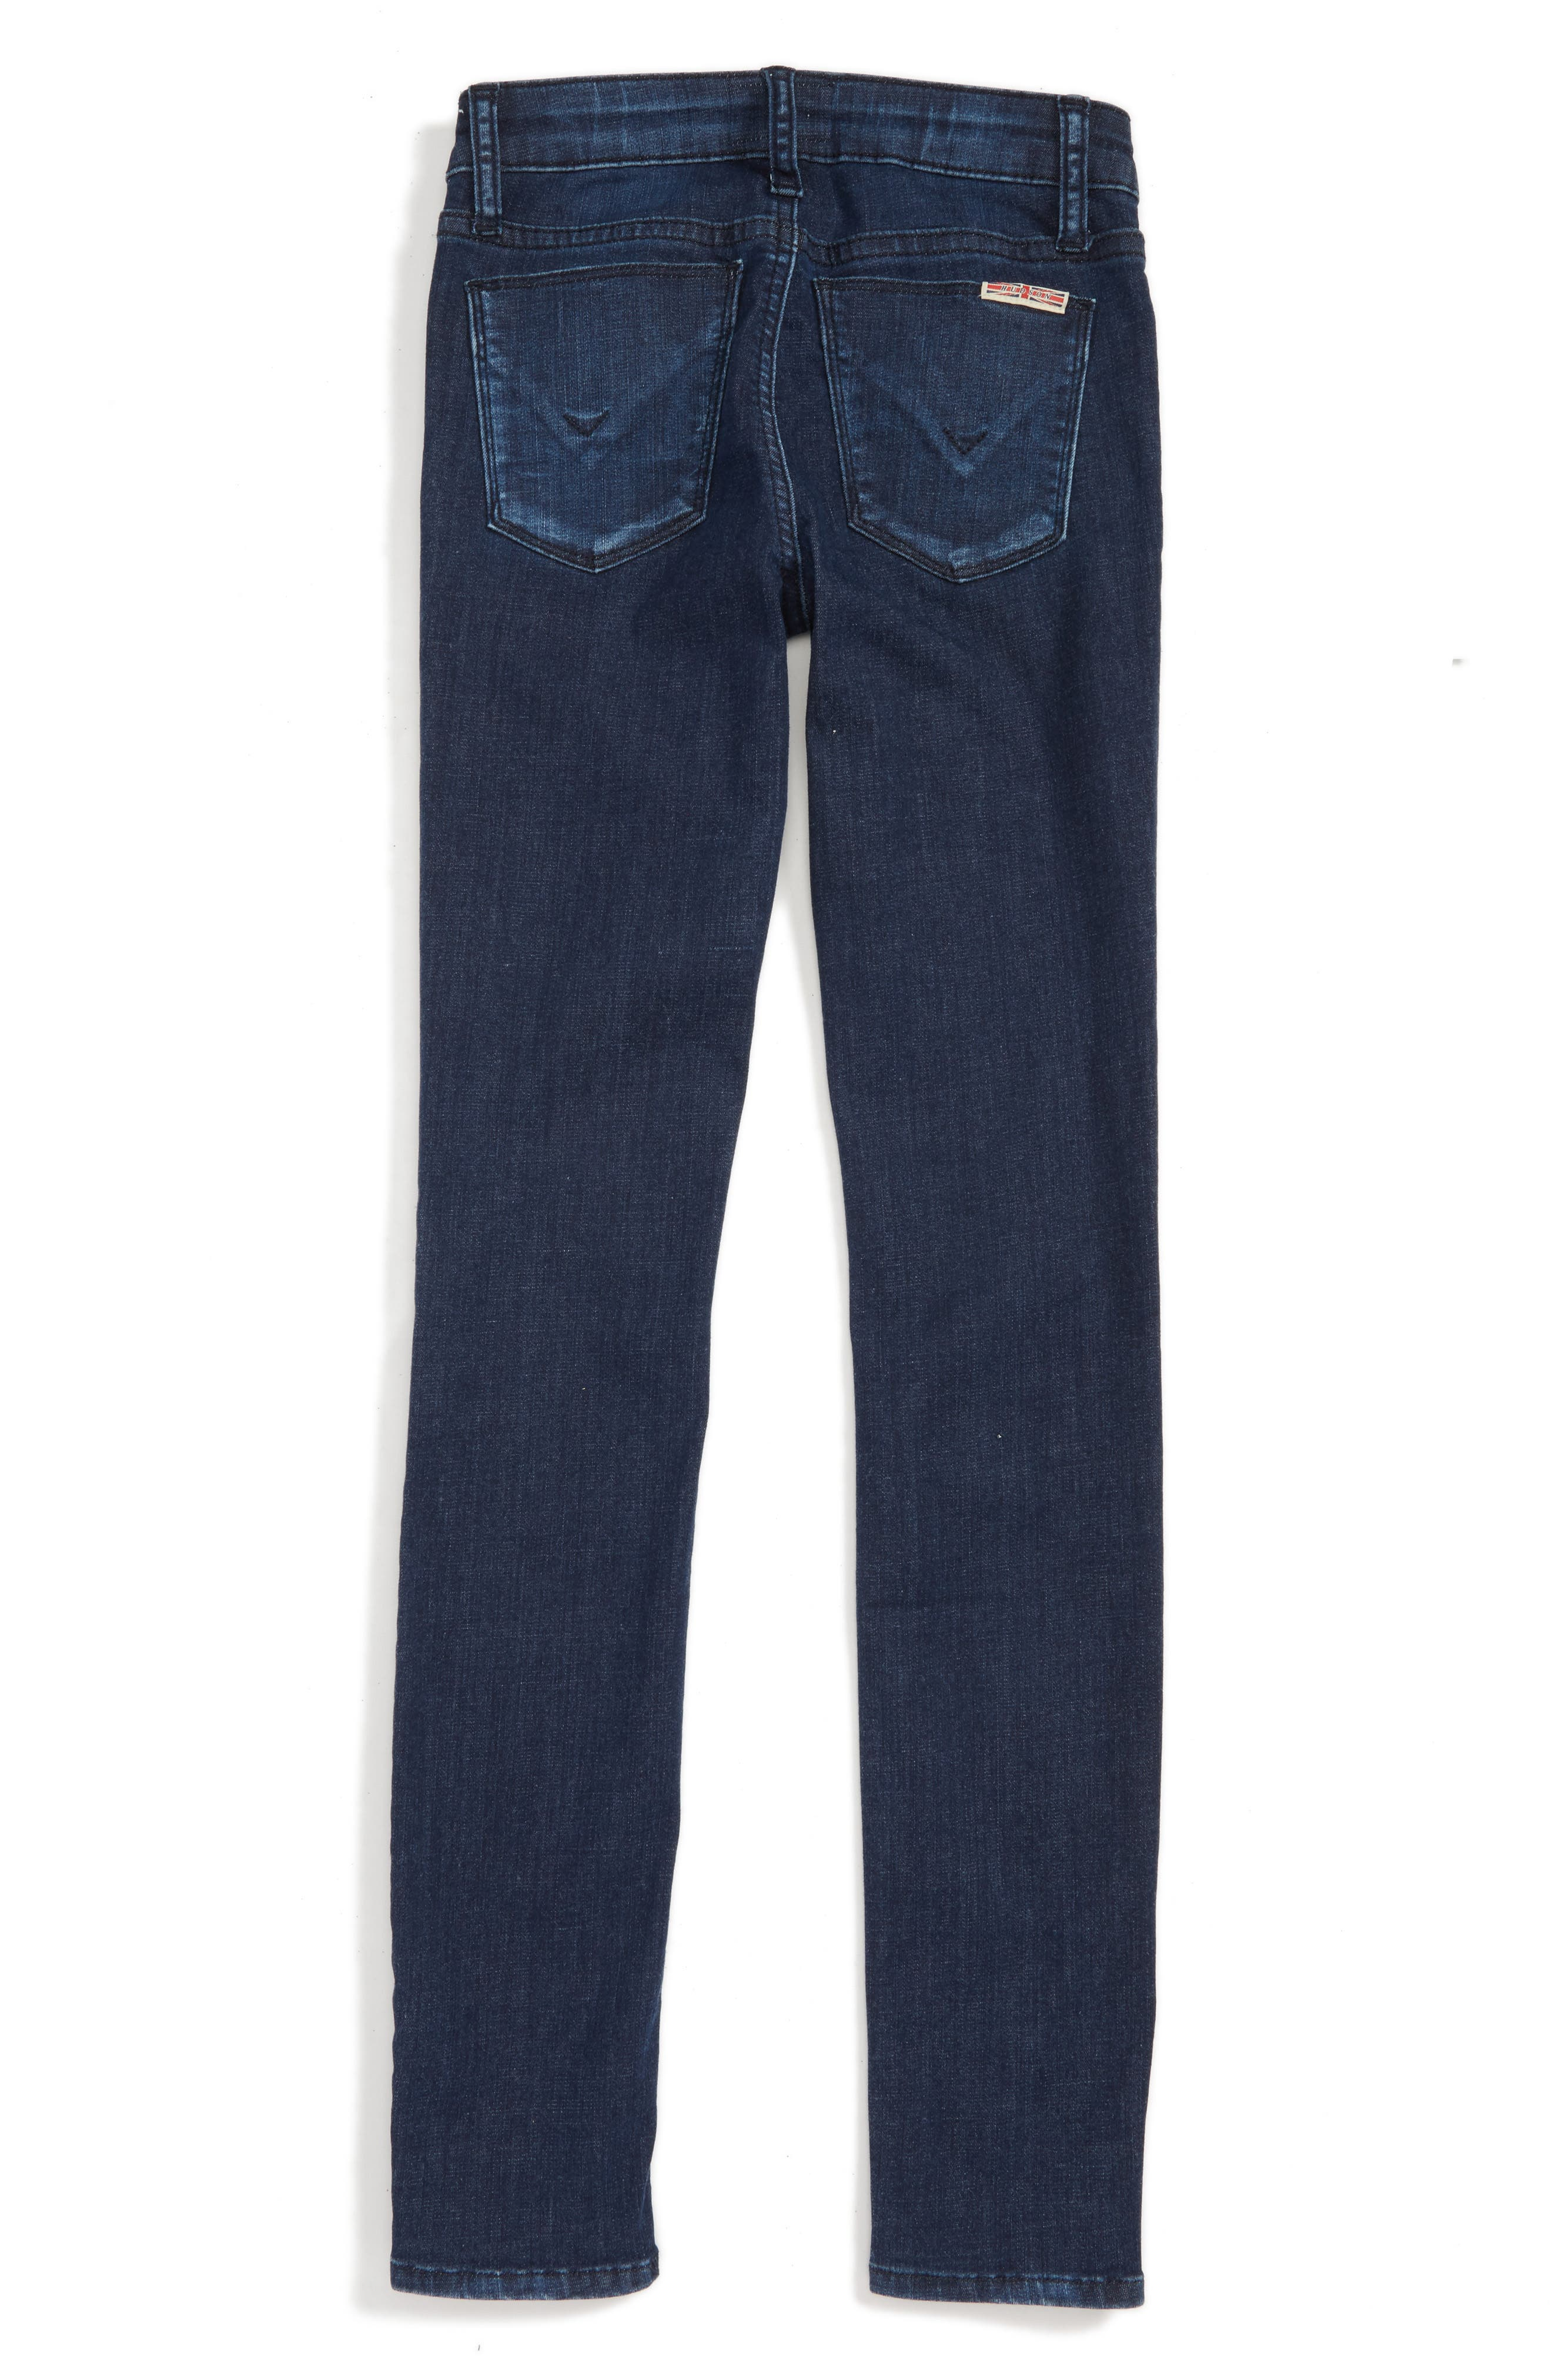 Dolly Skinny Jeans,                             Alternate thumbnail 3, color,                             Antique